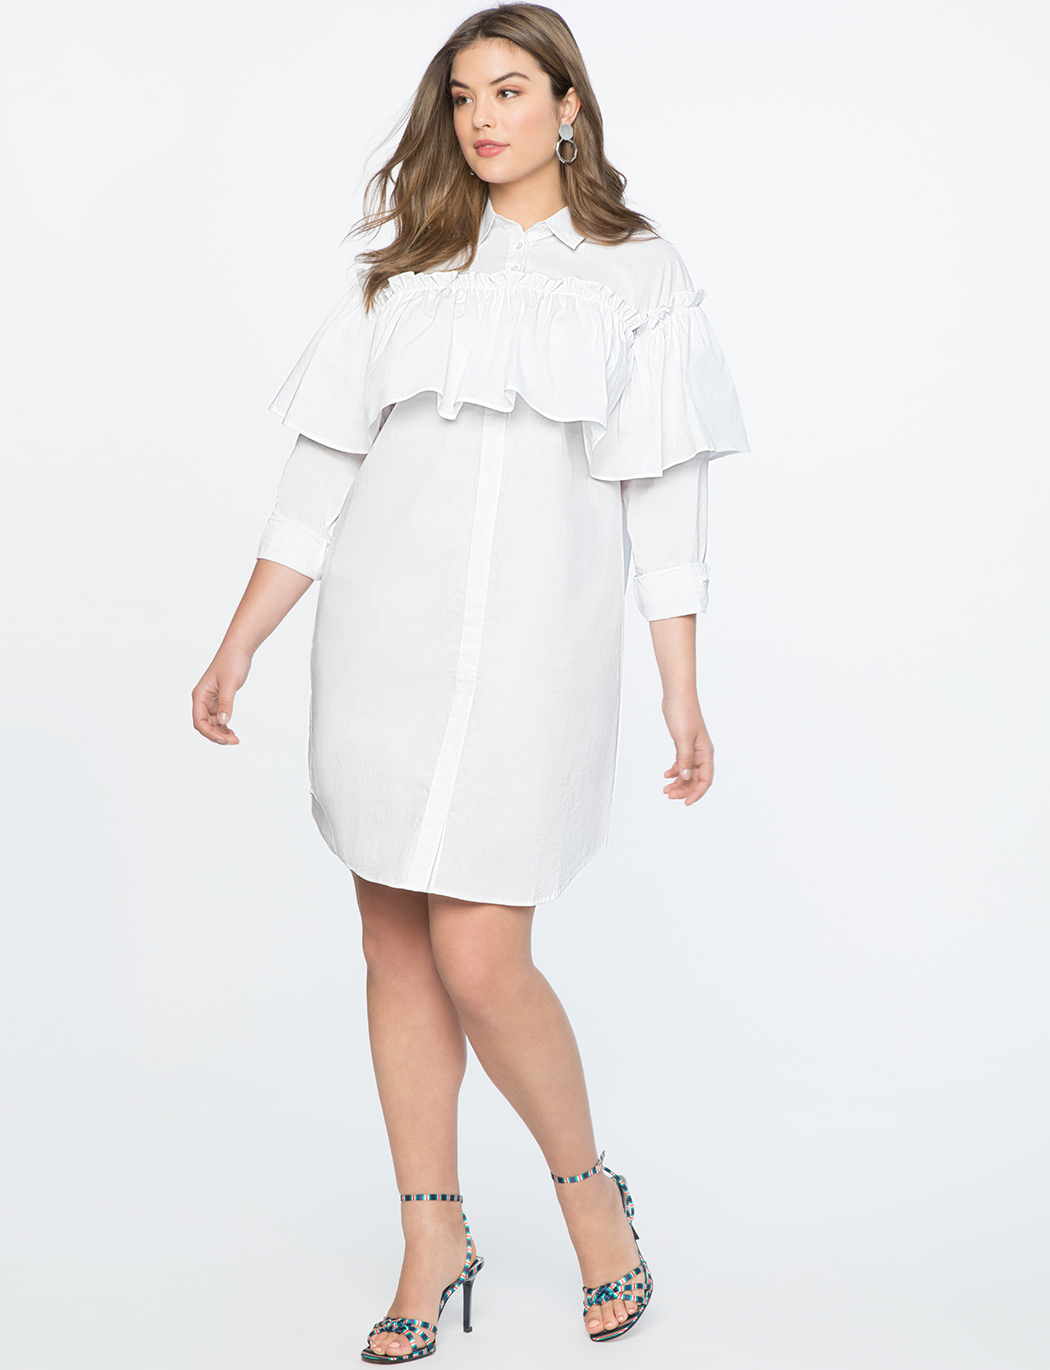 Shirtdress with Ruffle Overlay